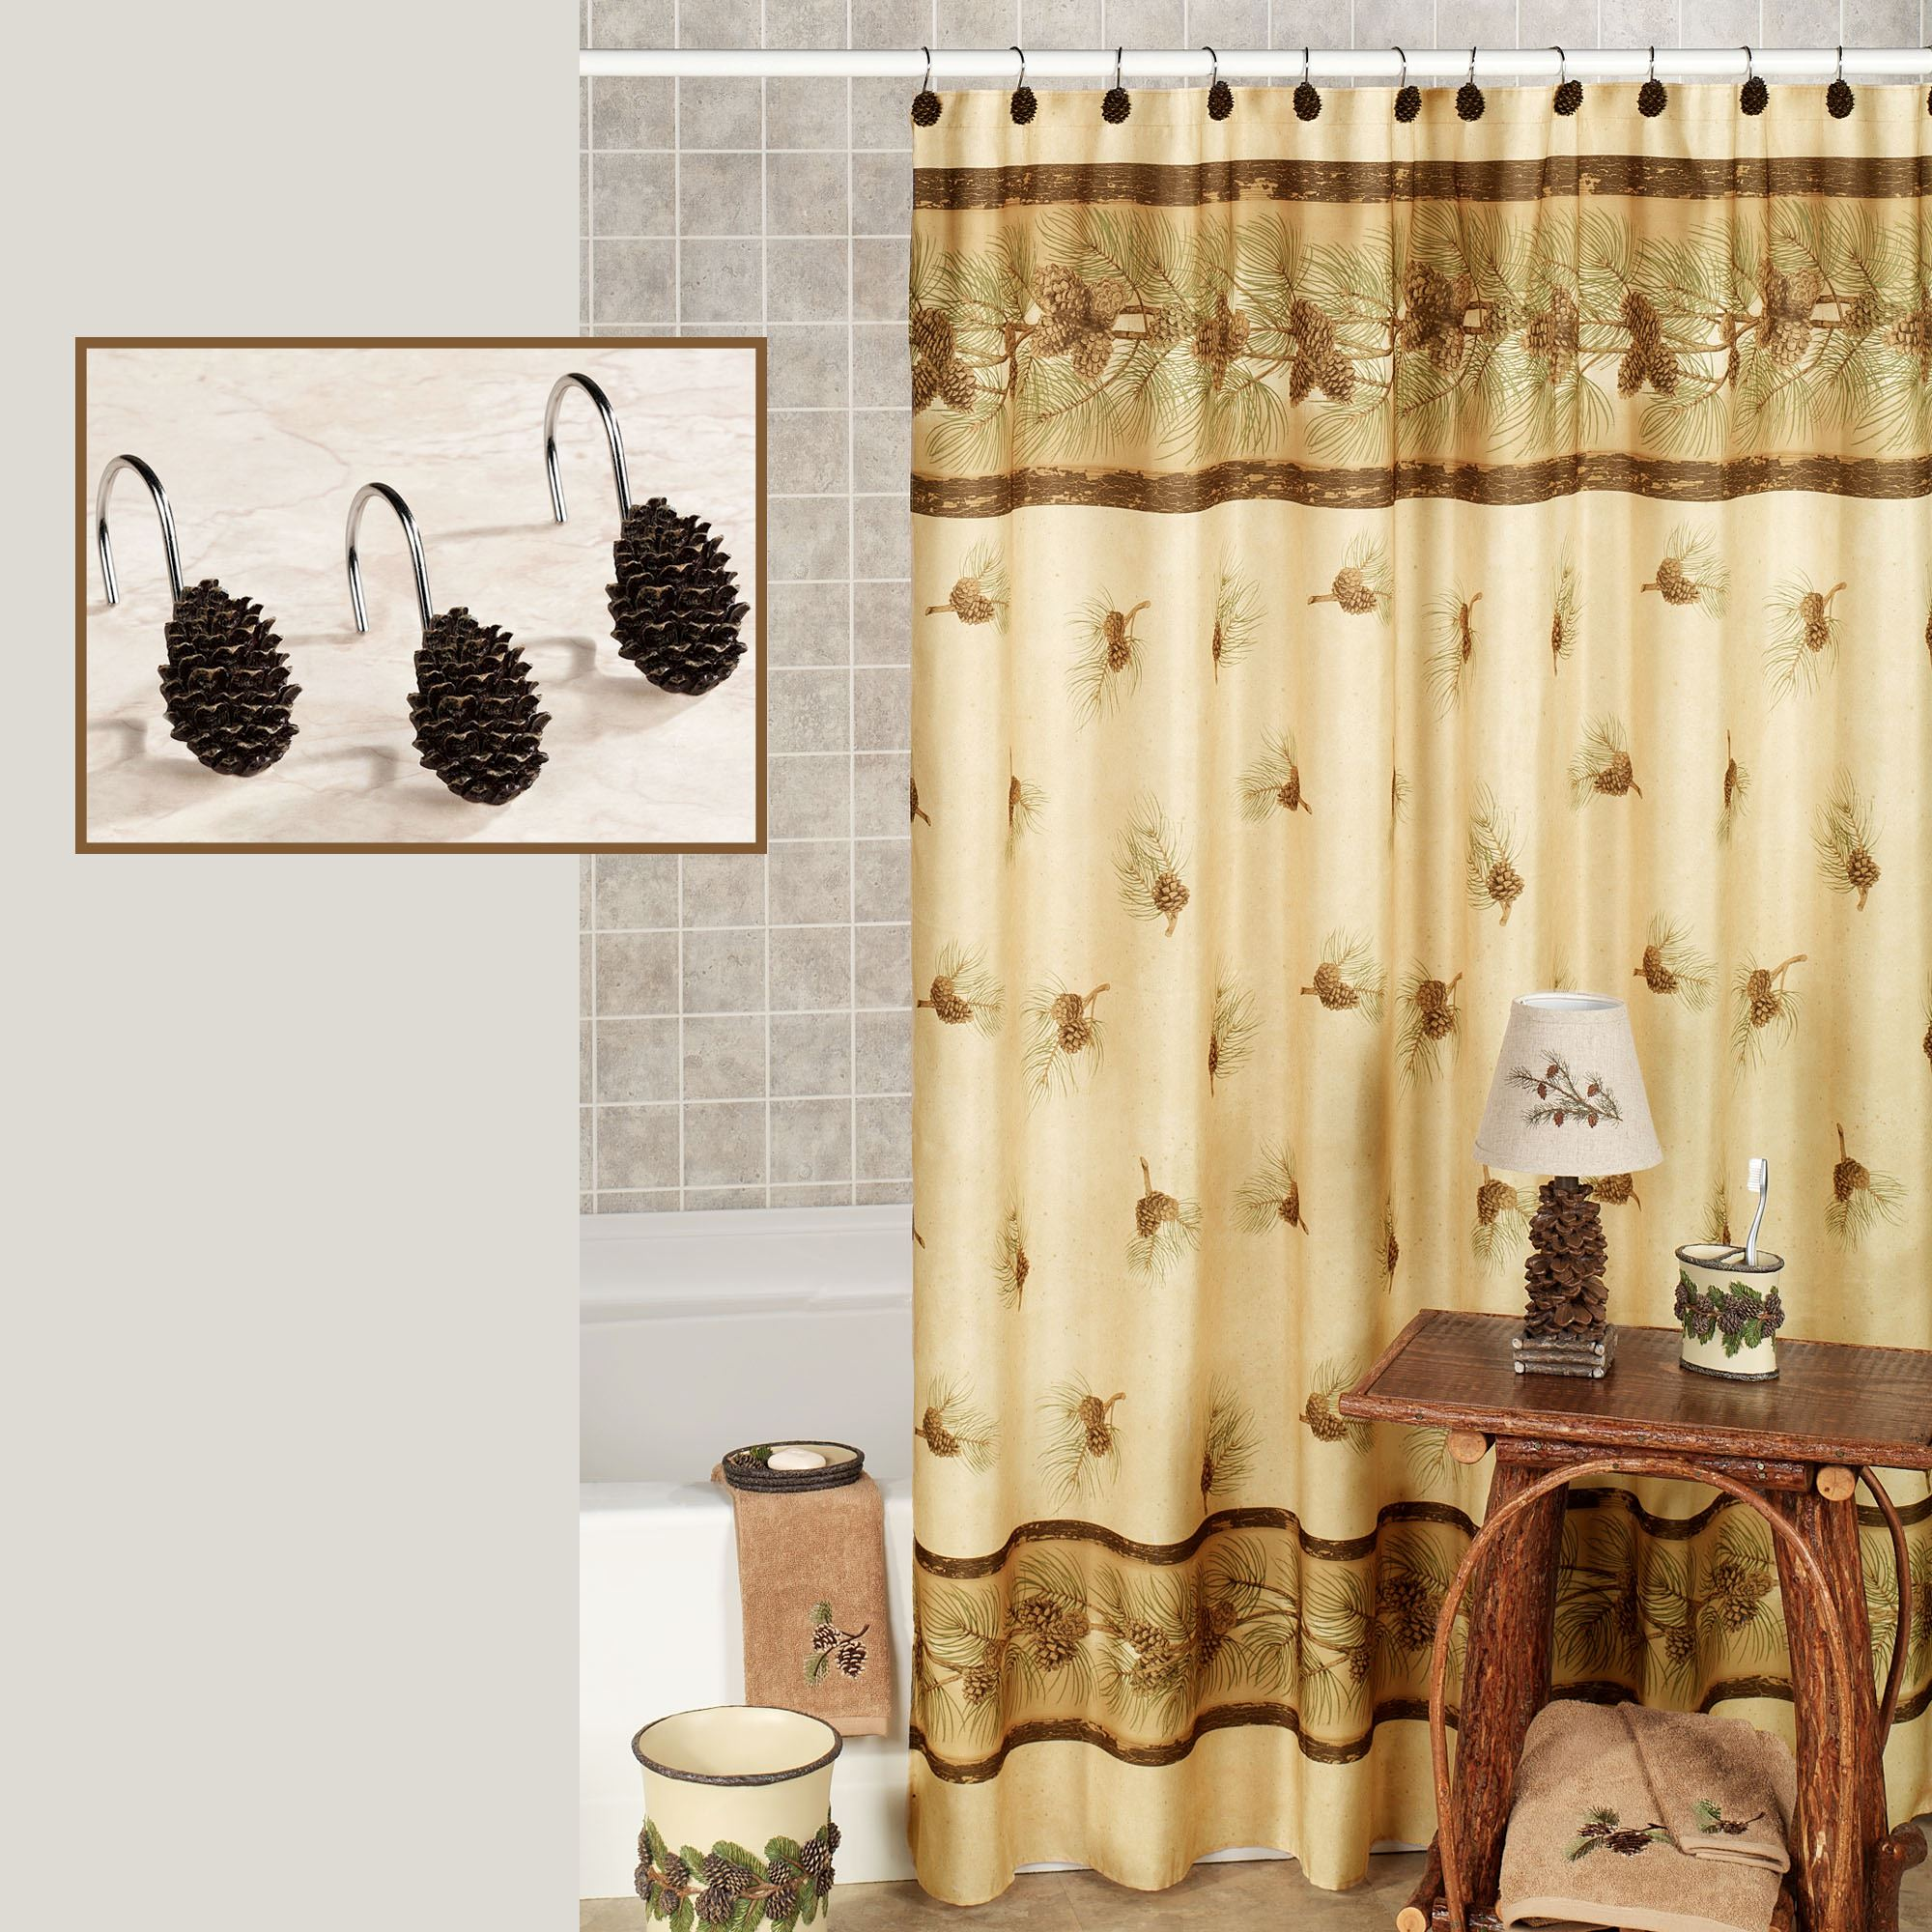 Cheap Rustic Shower Curtains Pinehaven Rustic Pine Cone Shower Curtain